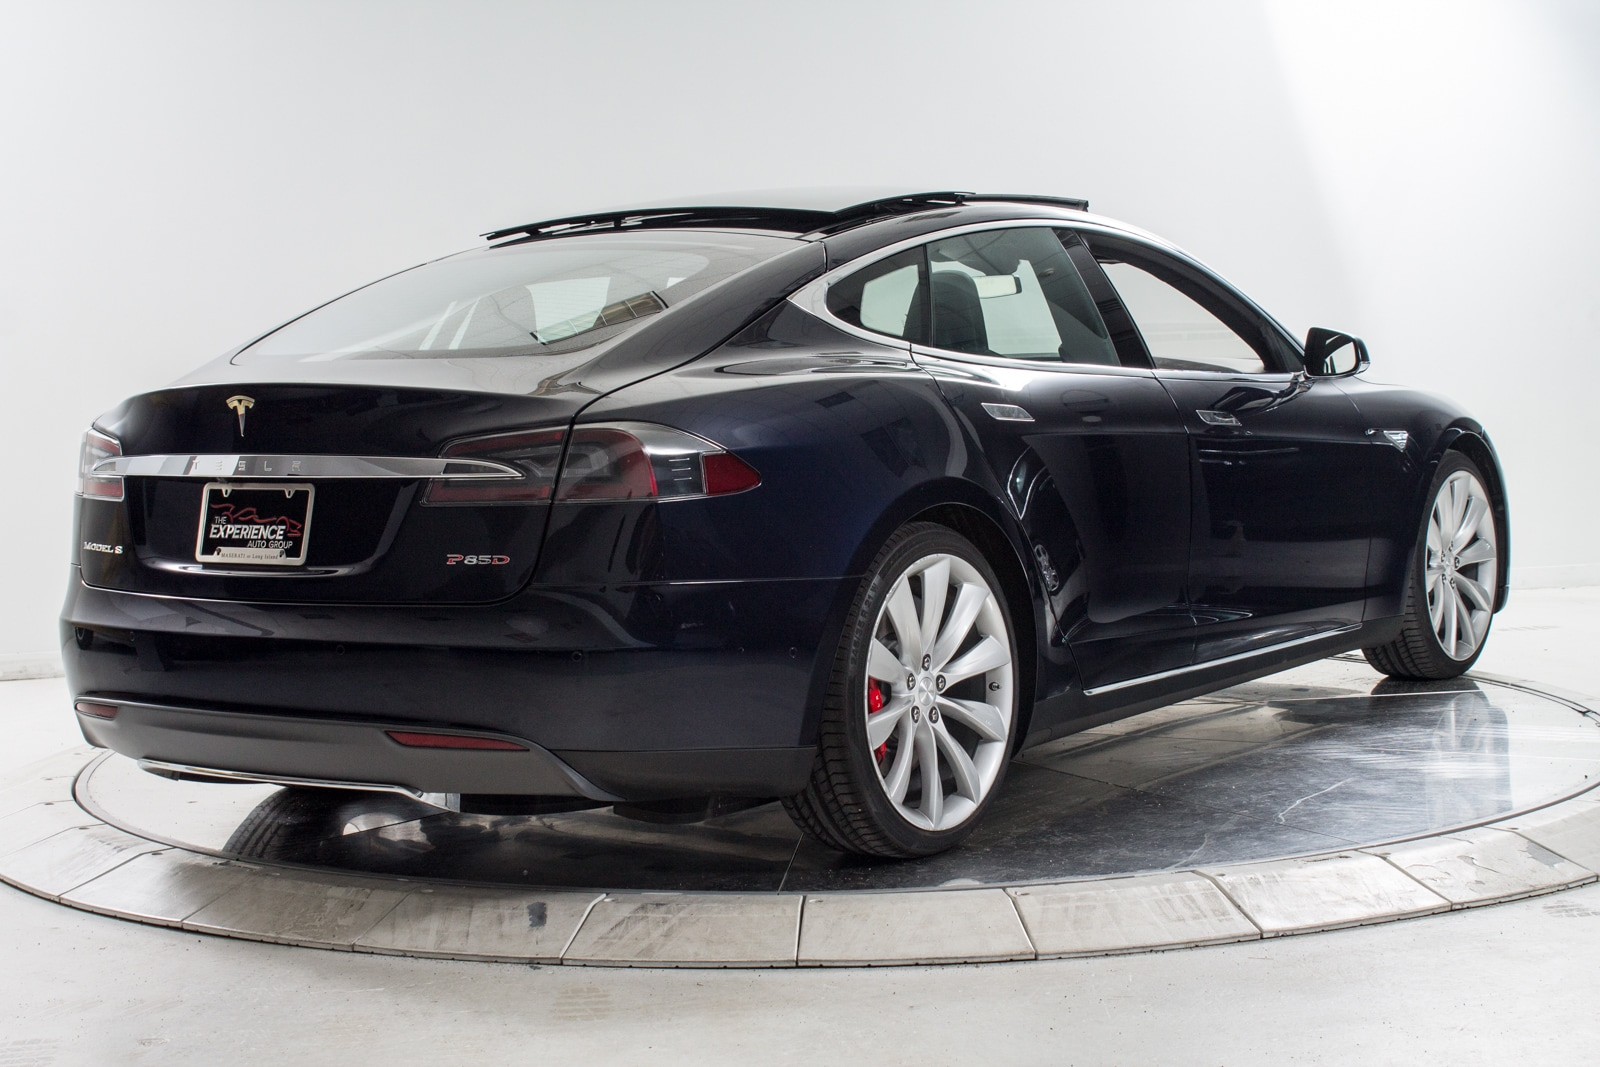 used 2015 tesla model s p85d for sale plainview near long island ny vin 5yjsa1h47ff082399. Black Bedroom Furniture Sets. Home Design Ideas